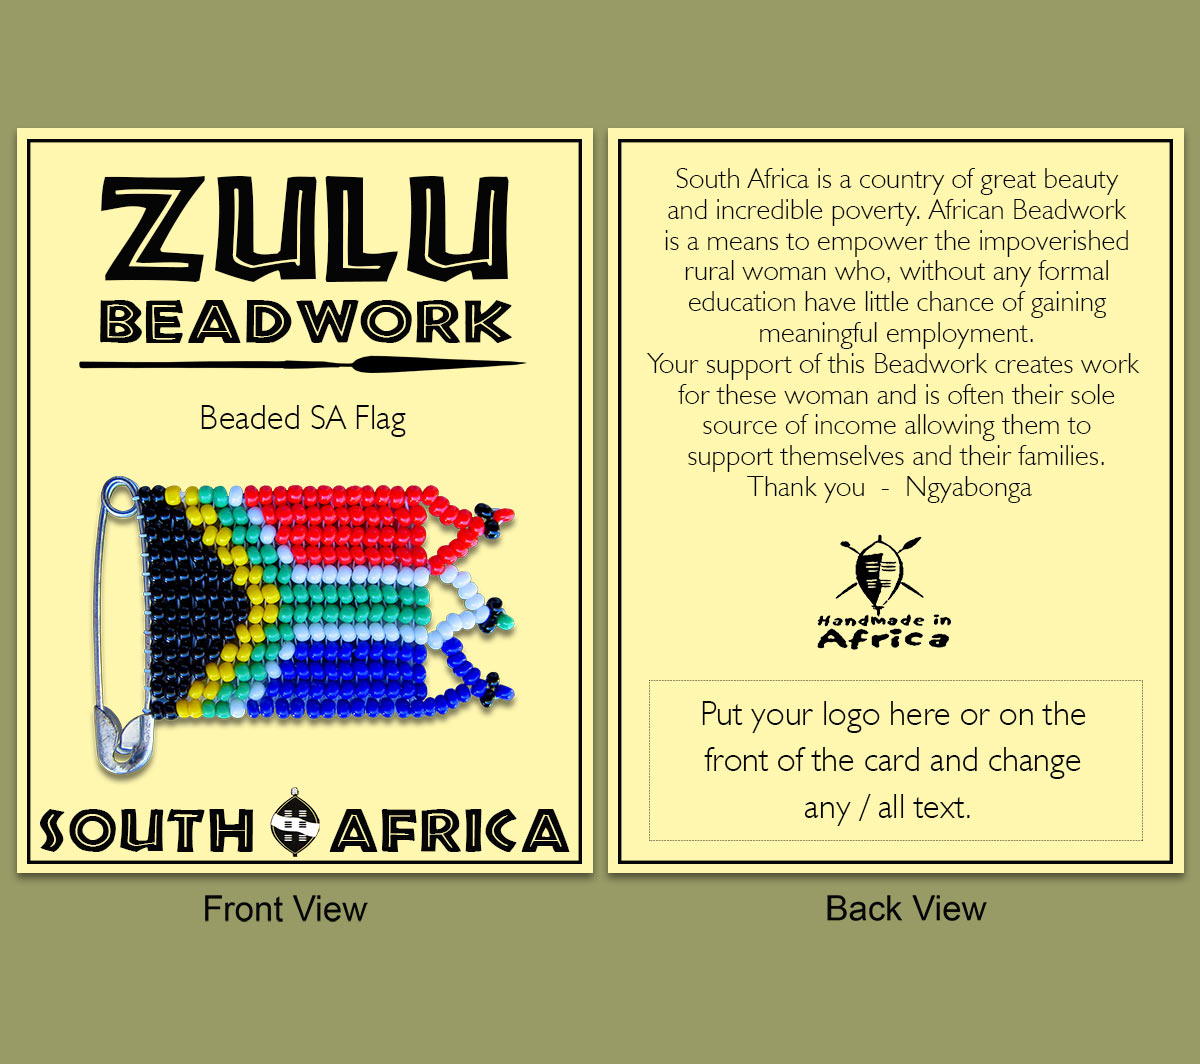 Beaded SA Flag Packaging